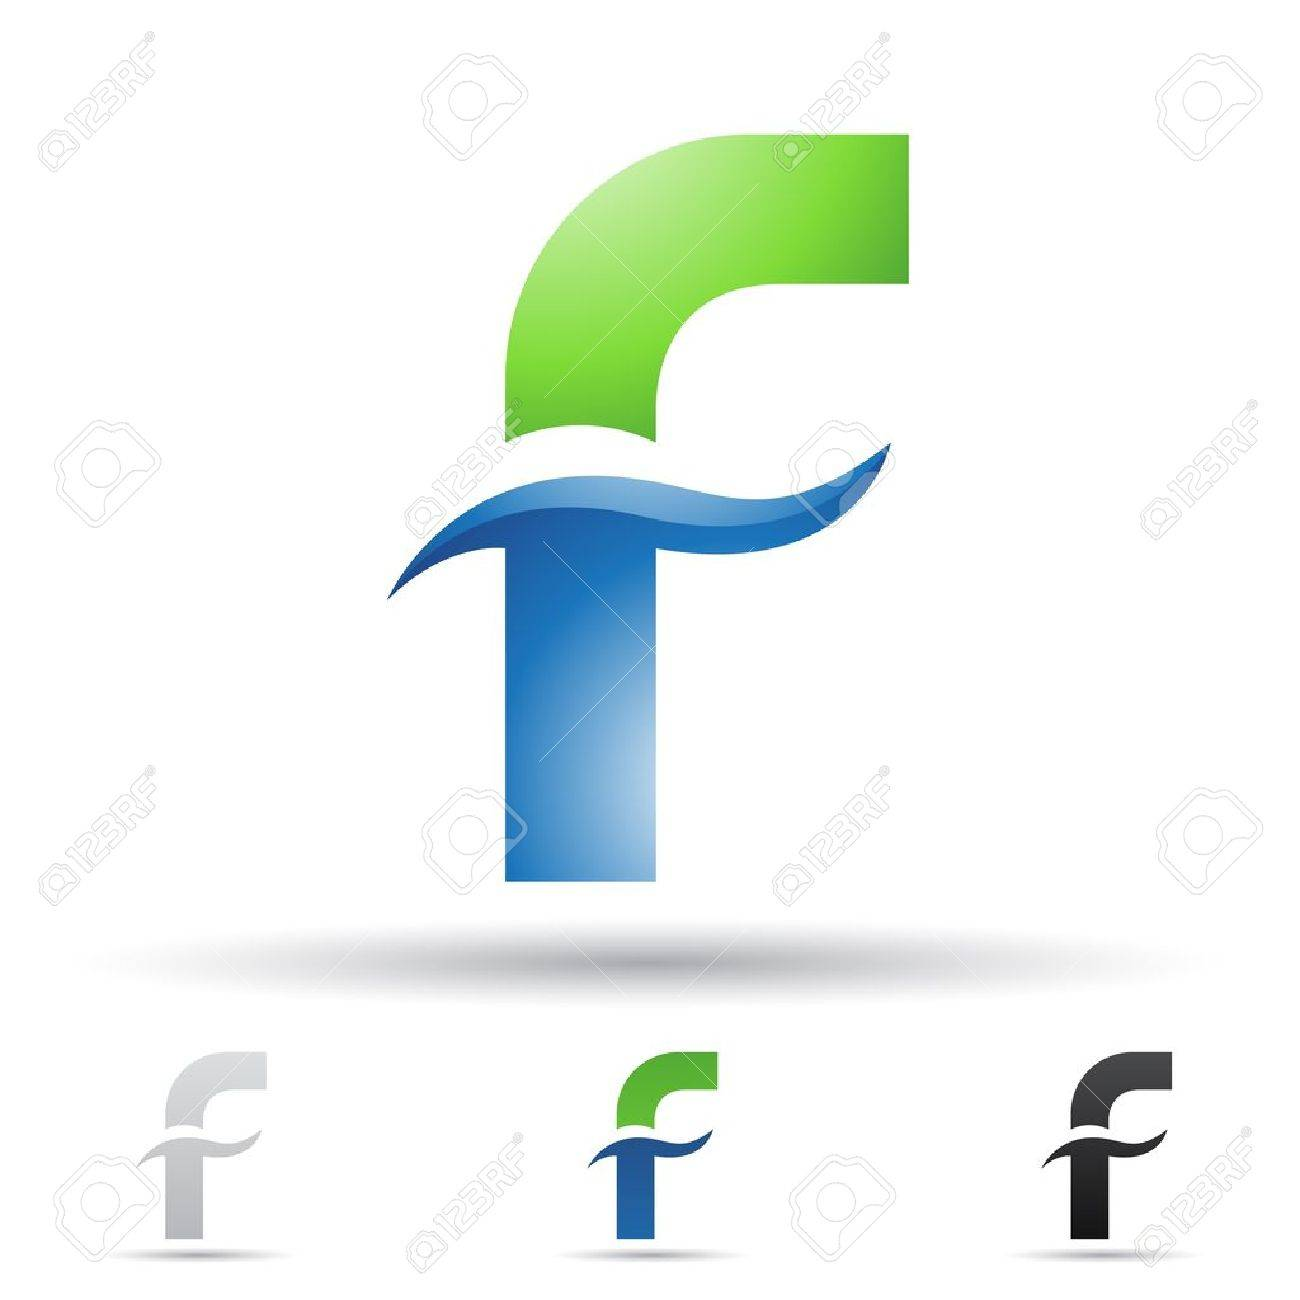 illustration of abstract icons based on the letter F Stock Vector - 14621597